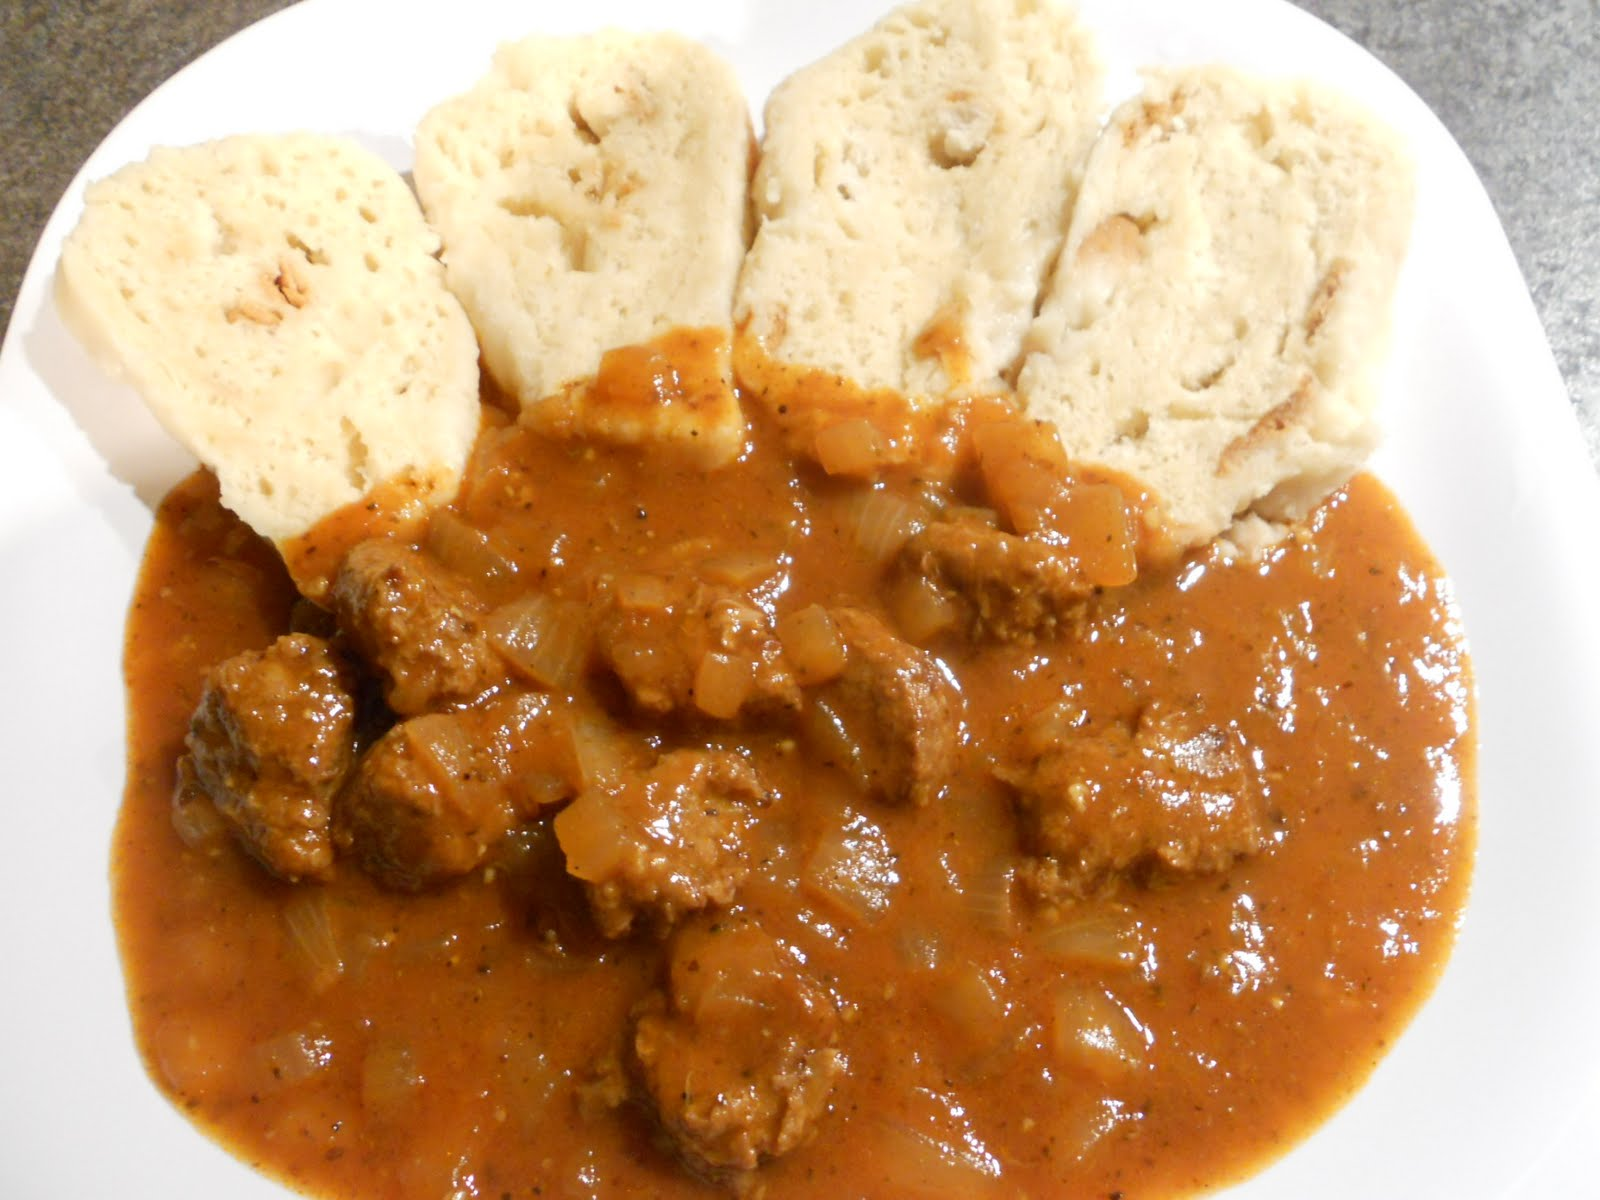 ... goulash the original goulash comes from hungary czech goulash